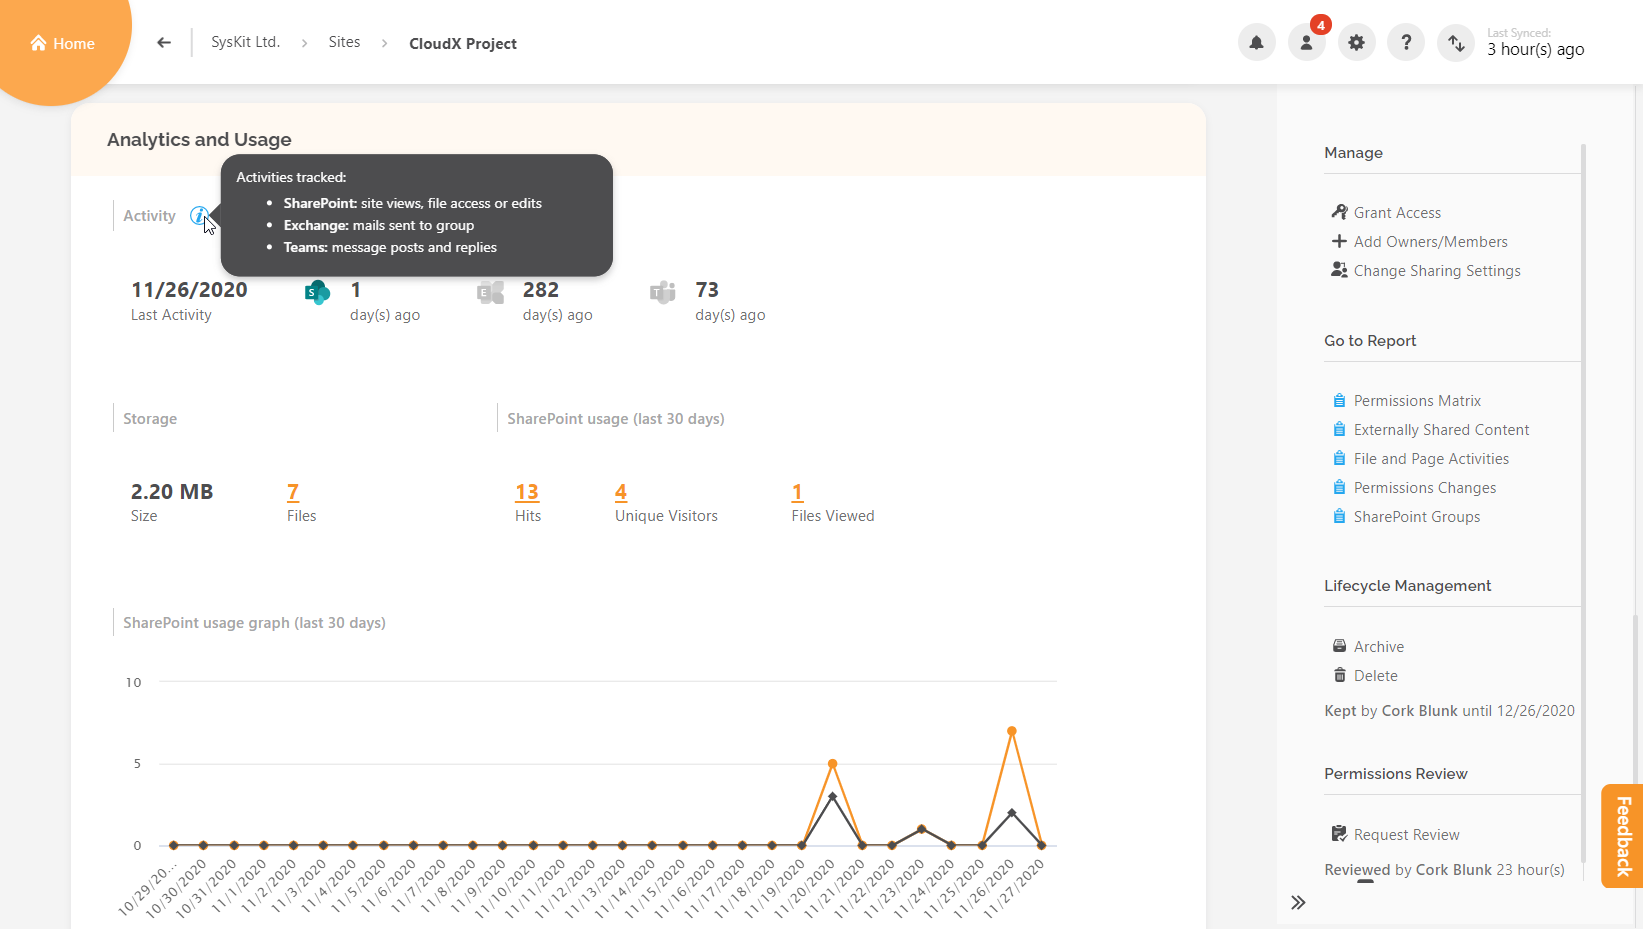 Details screen - Analytics and Usage tile - Activity section